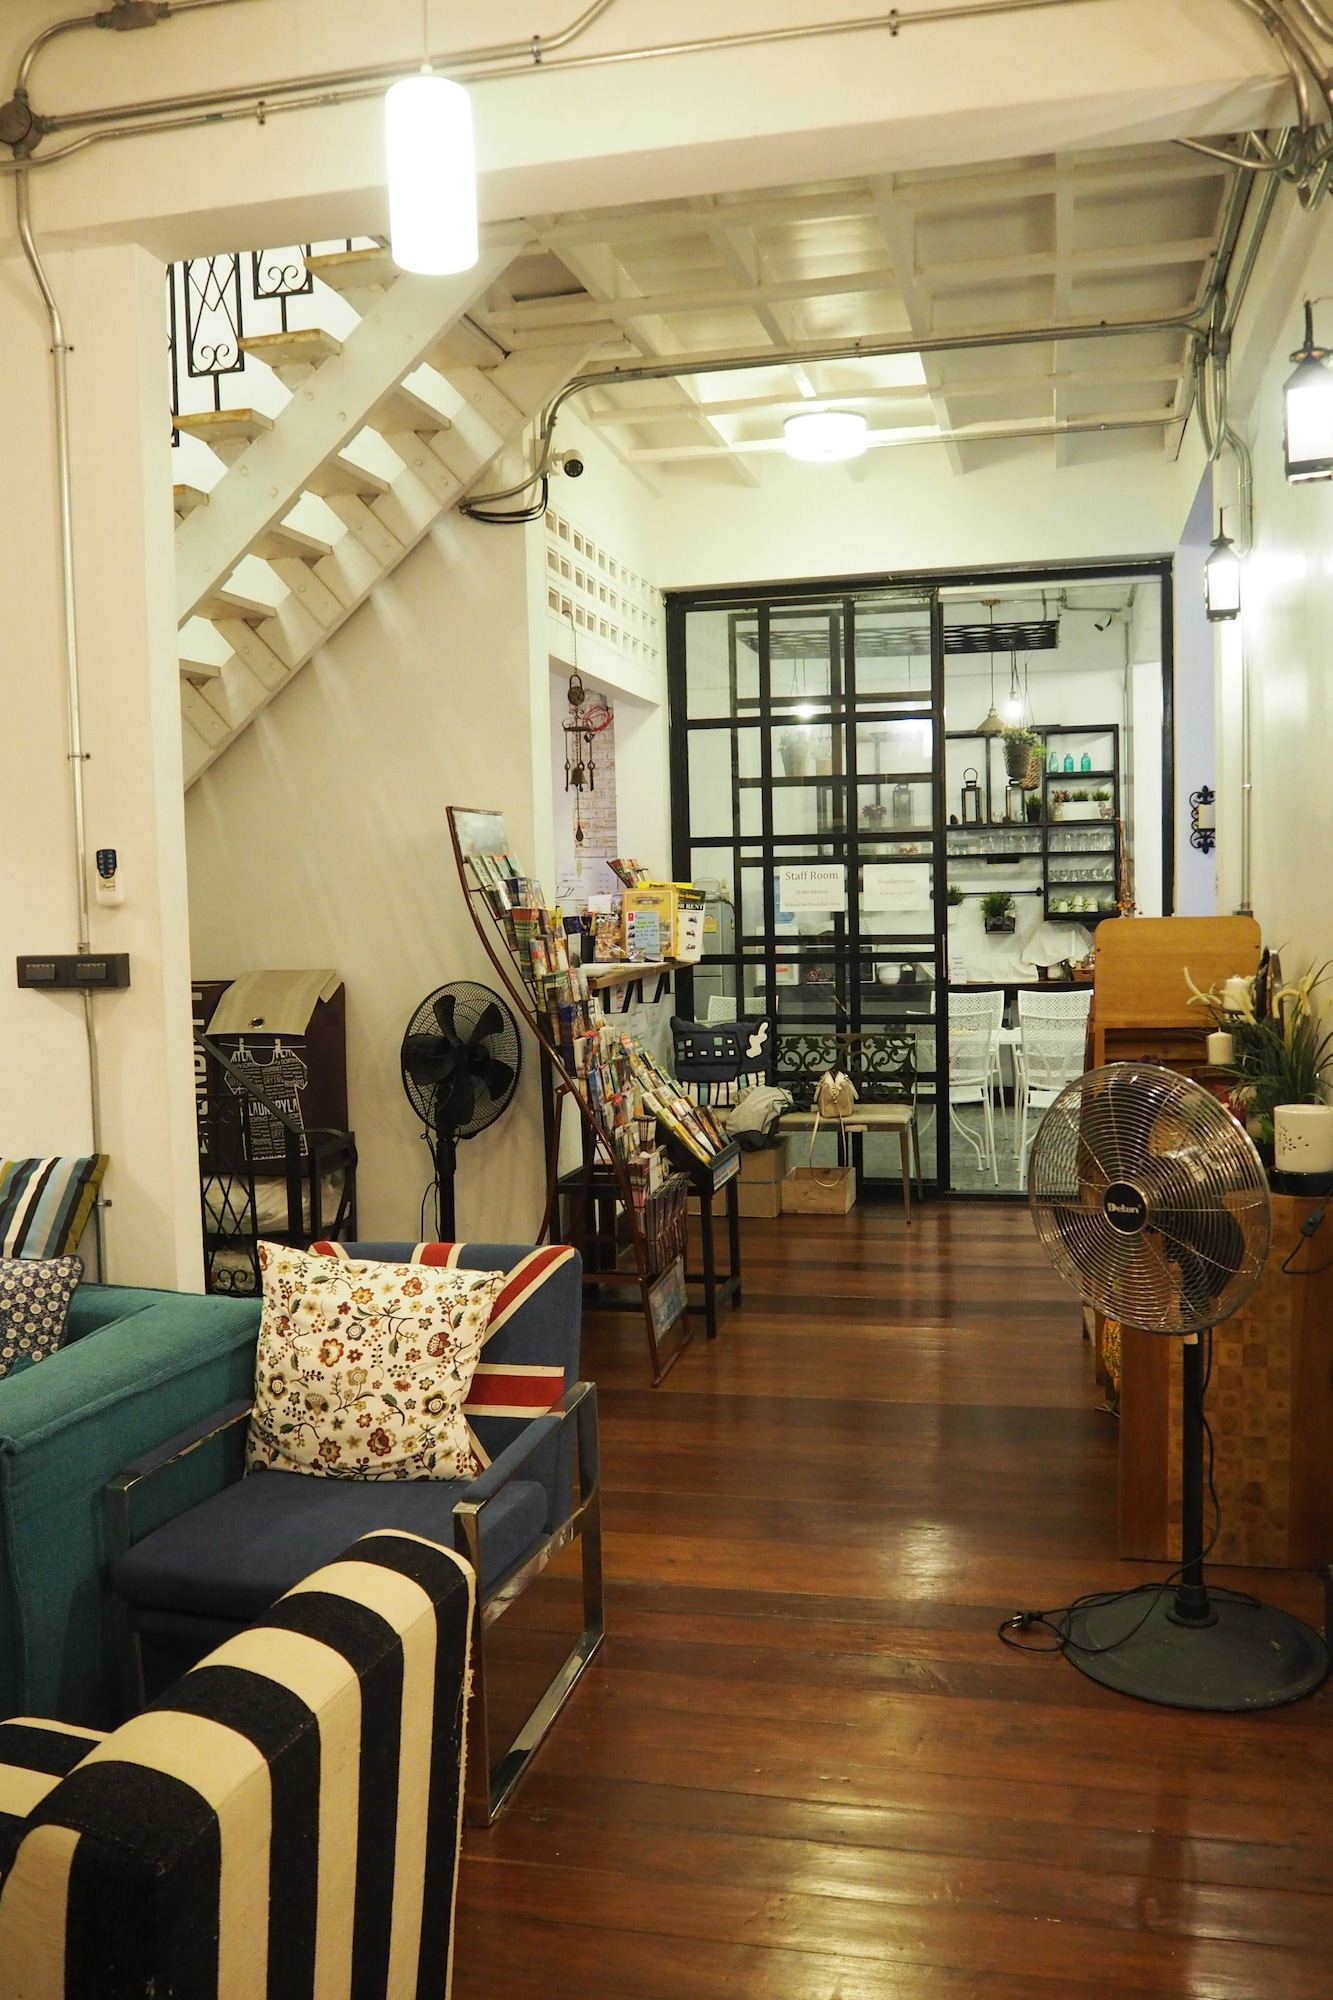 Sherloft Home and Hostel Private Room, Muang Chiang Mai